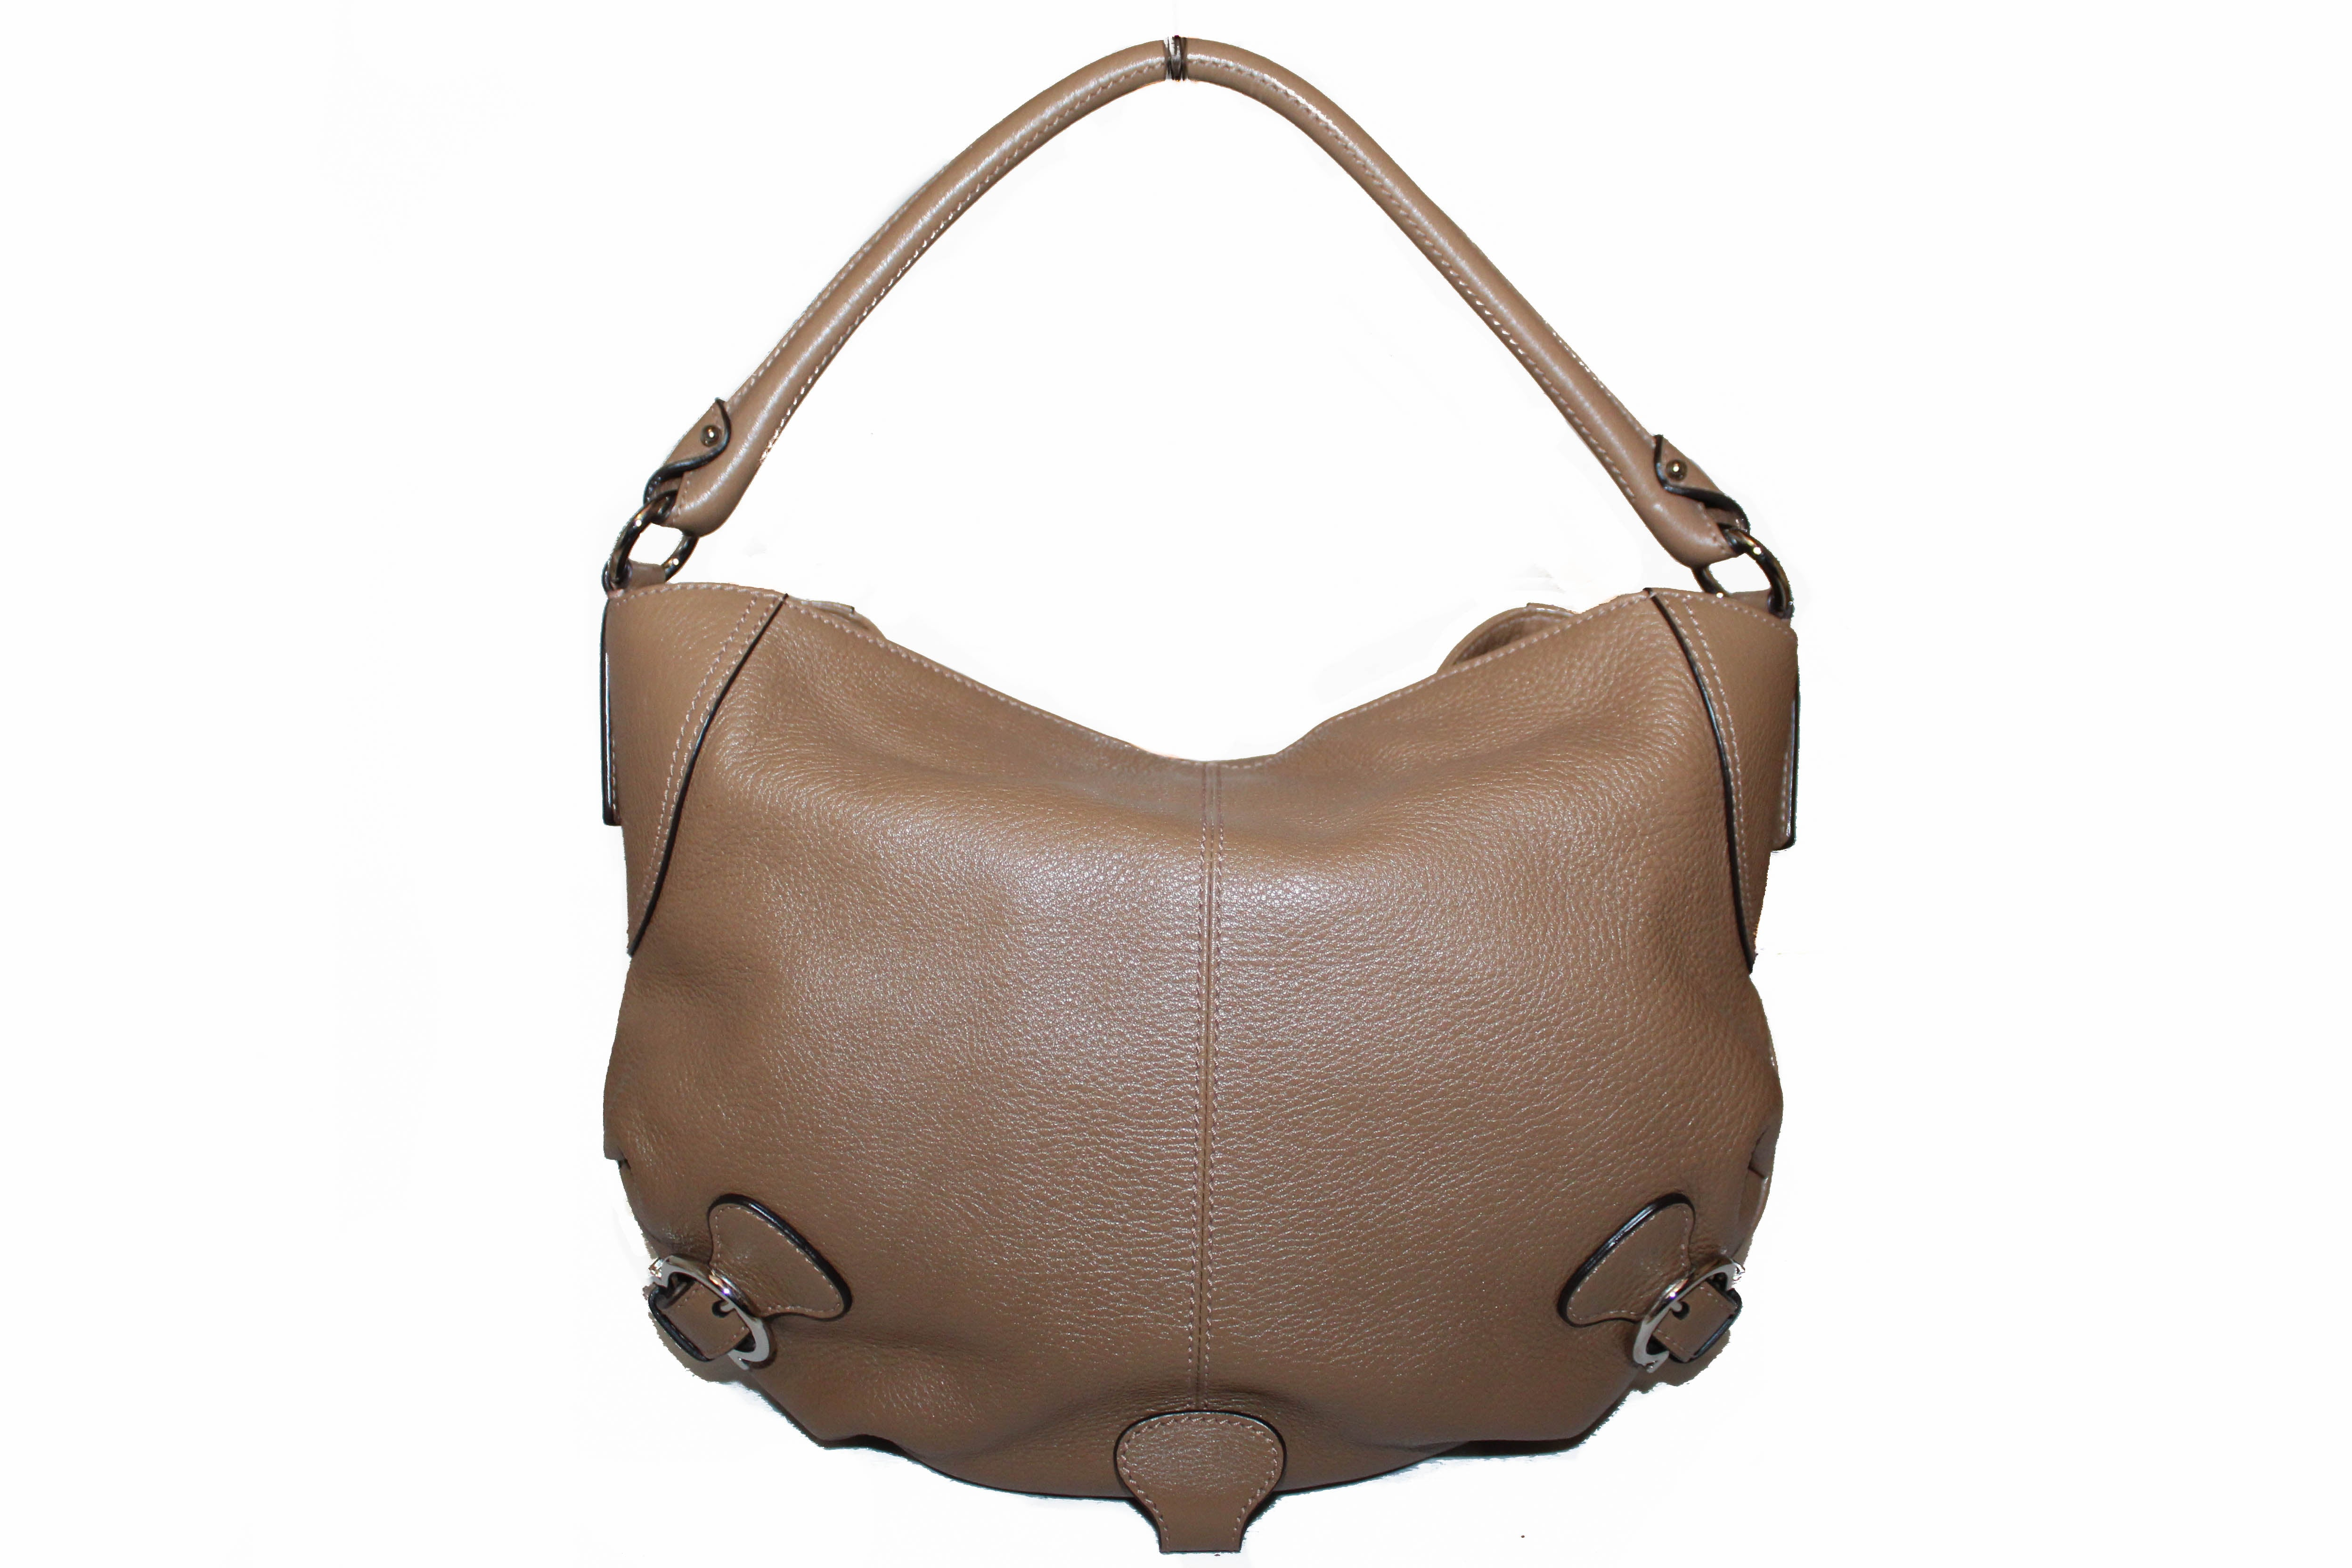 Authentic Salvatore Ferragamo Brown Calfskin Leather Hobo Bag